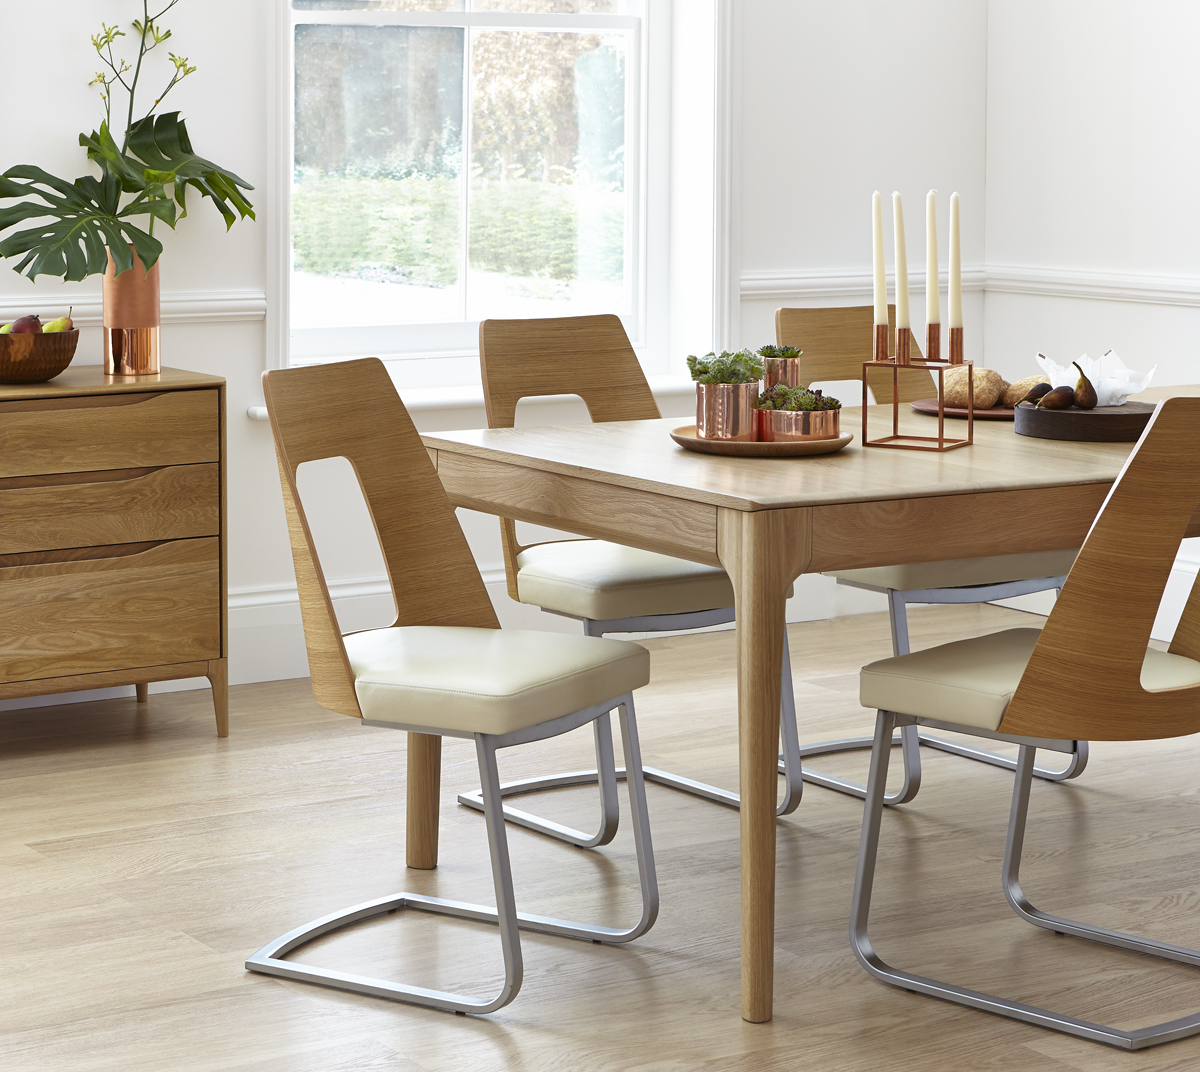 Ercol Furniture Outlet  Ercol Stockists